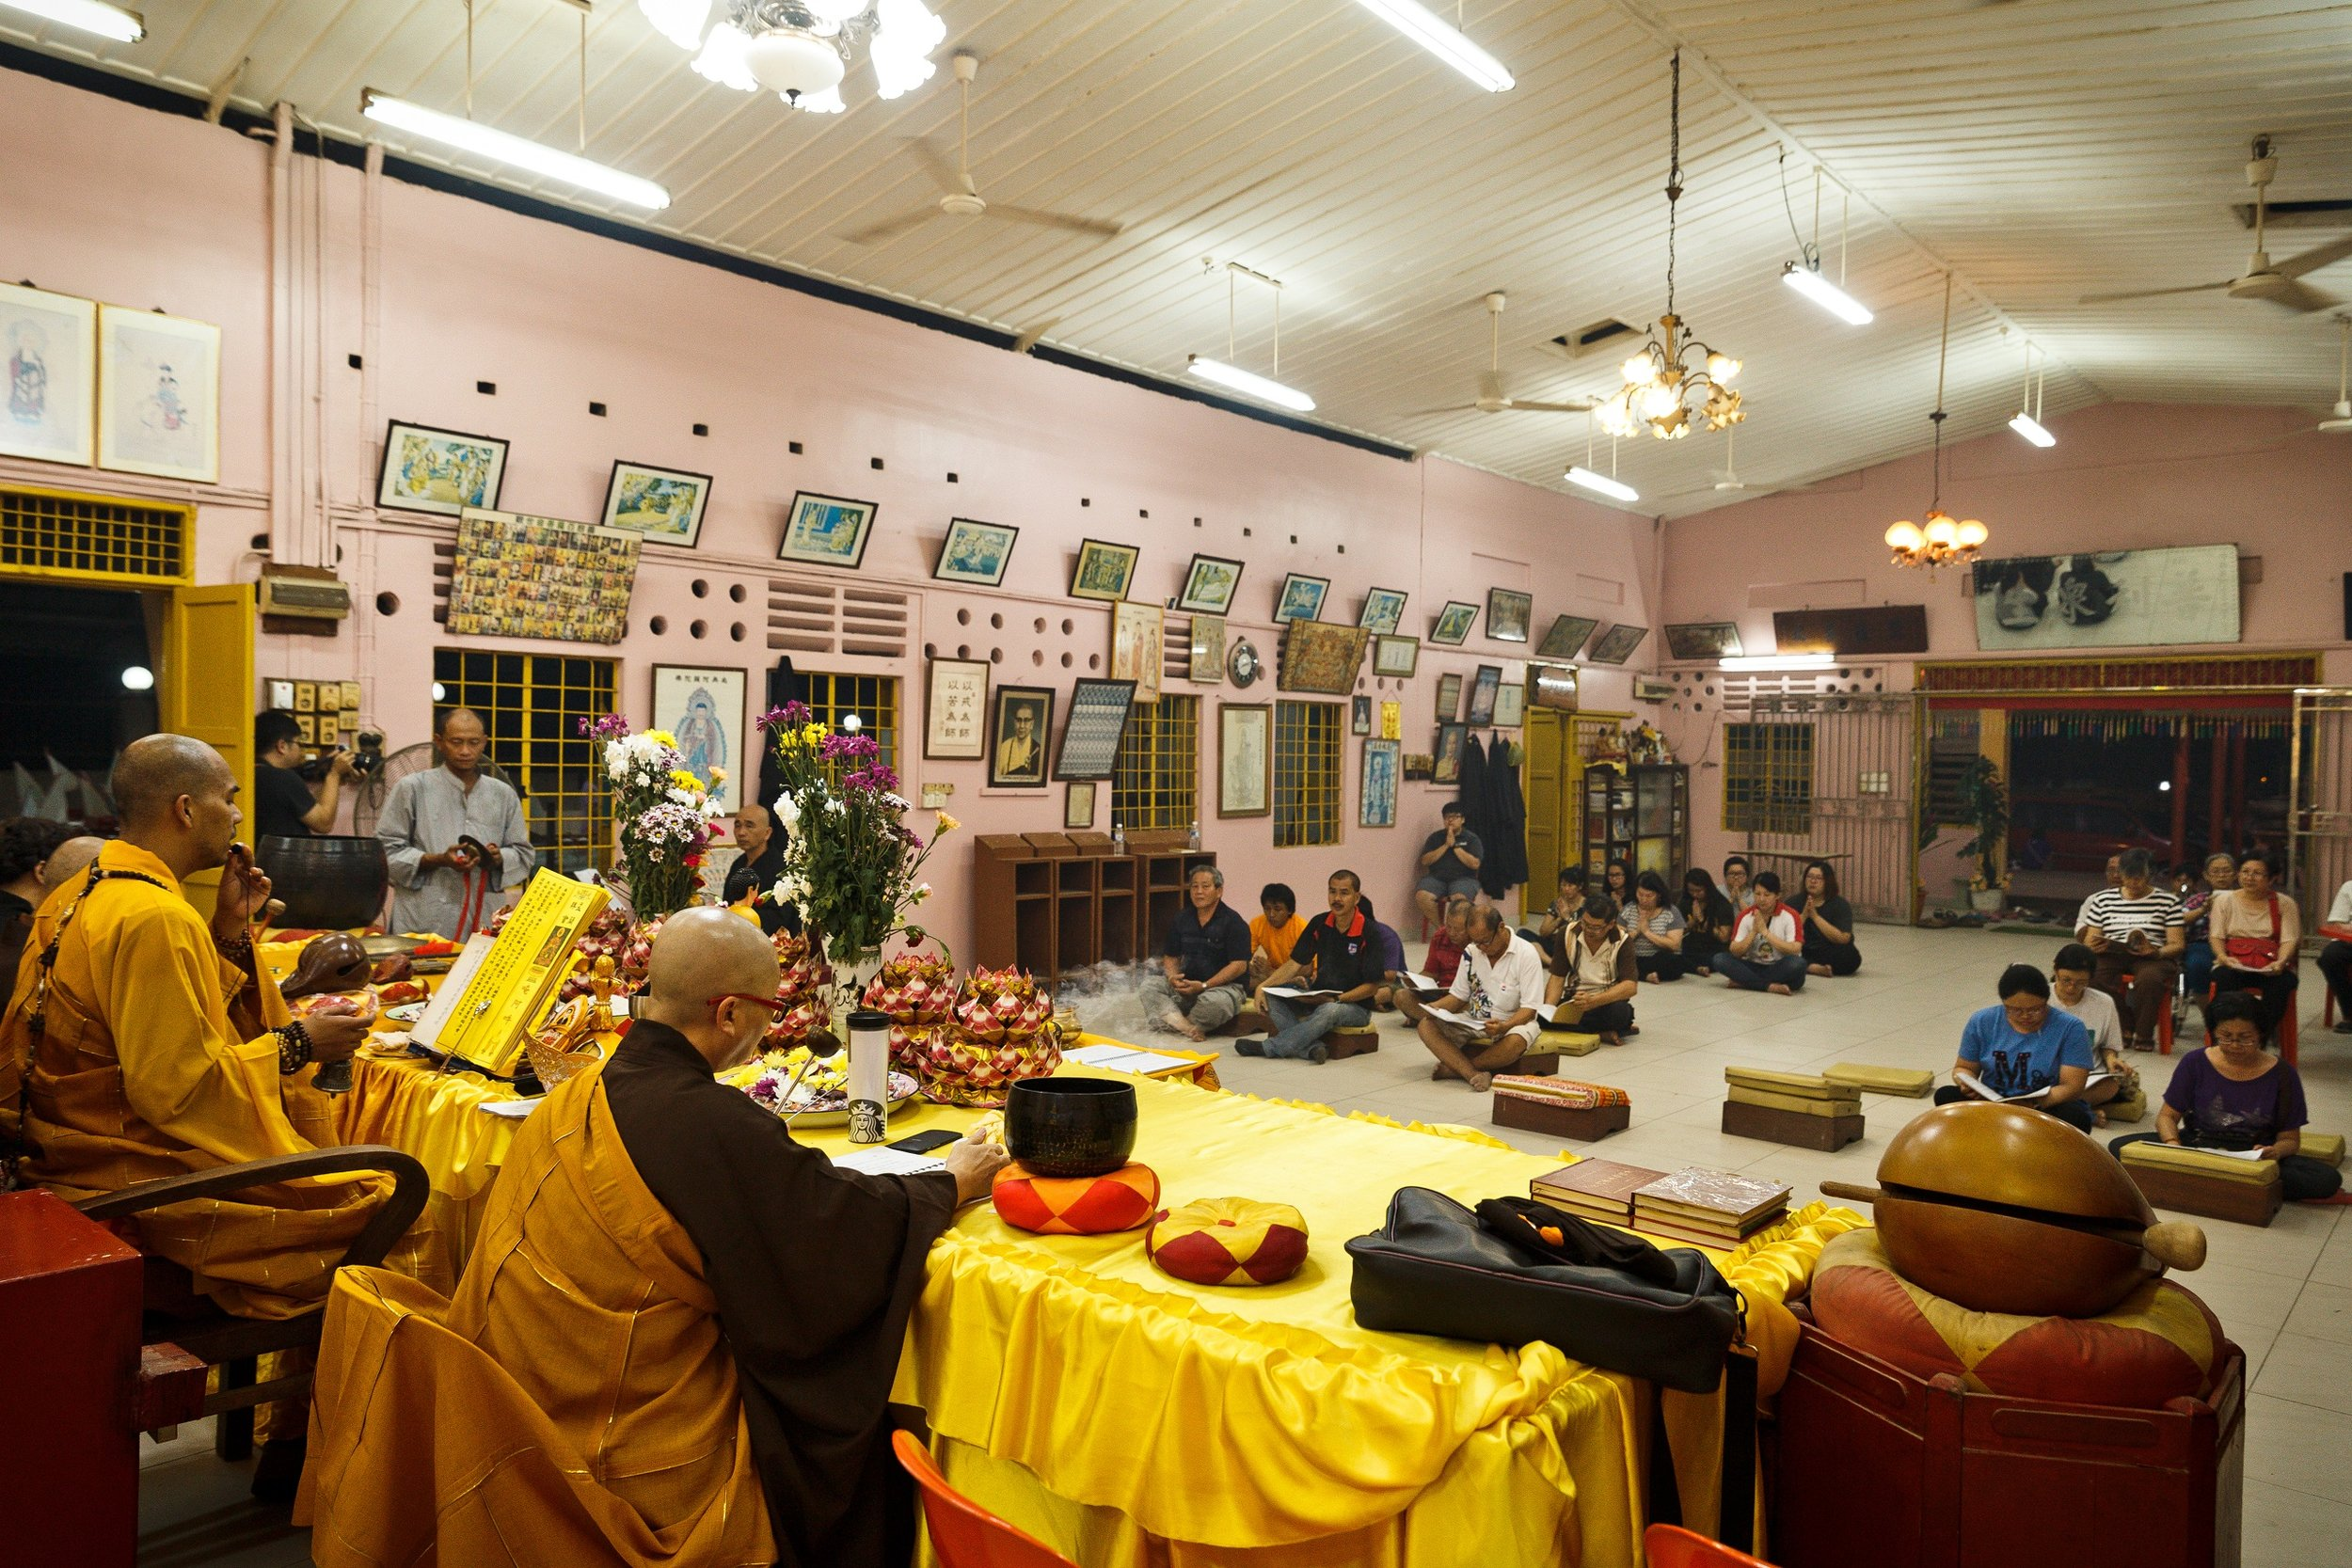 Chanting ceremony at the Buddhist Temple. (photo by Mango Loke)